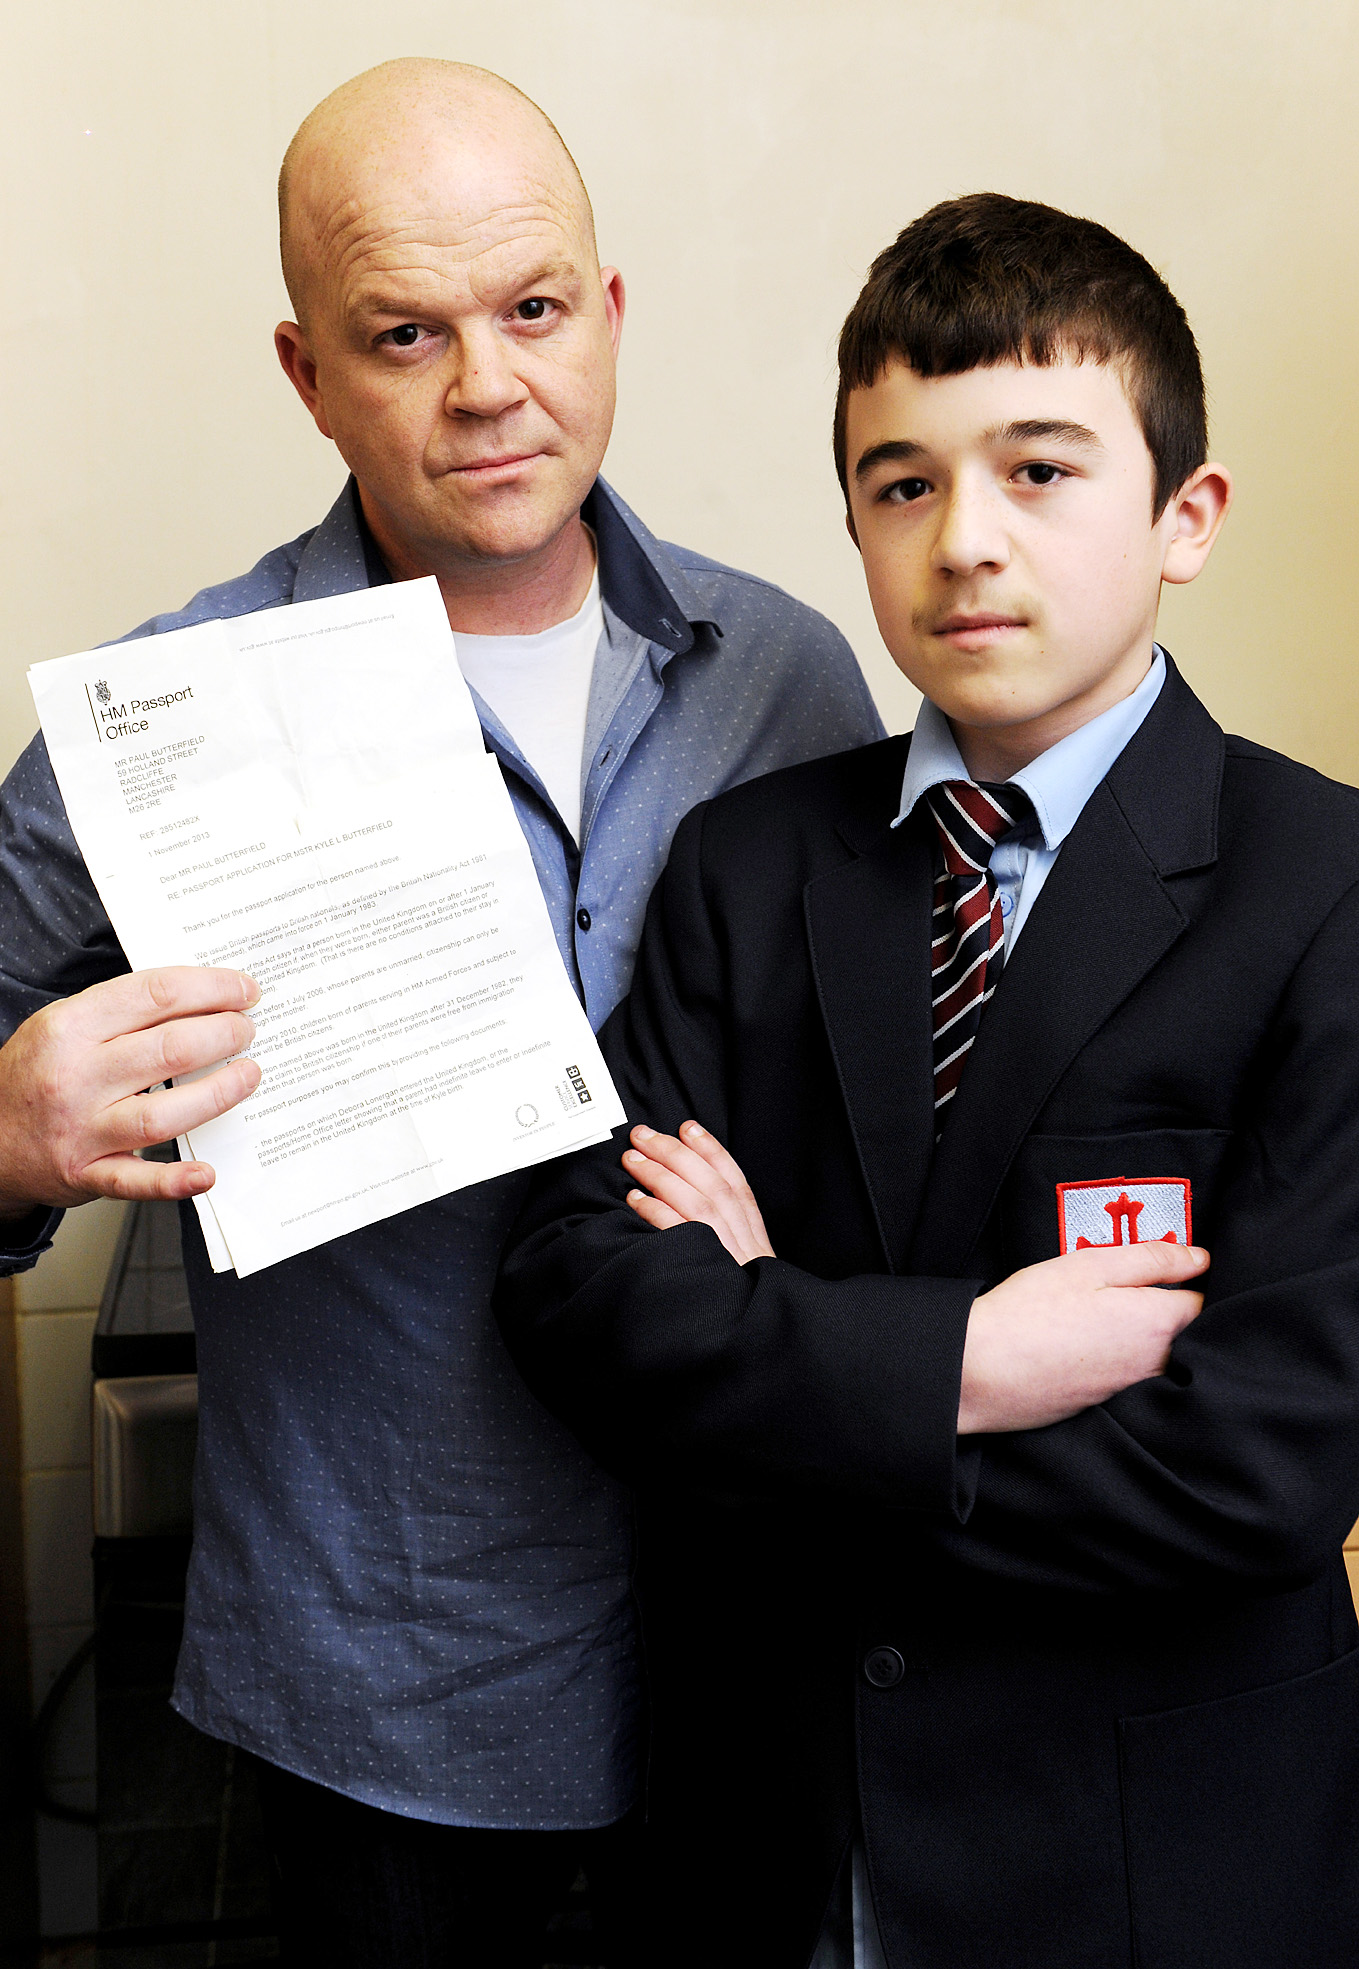 British schoolboy told he is technically Italian